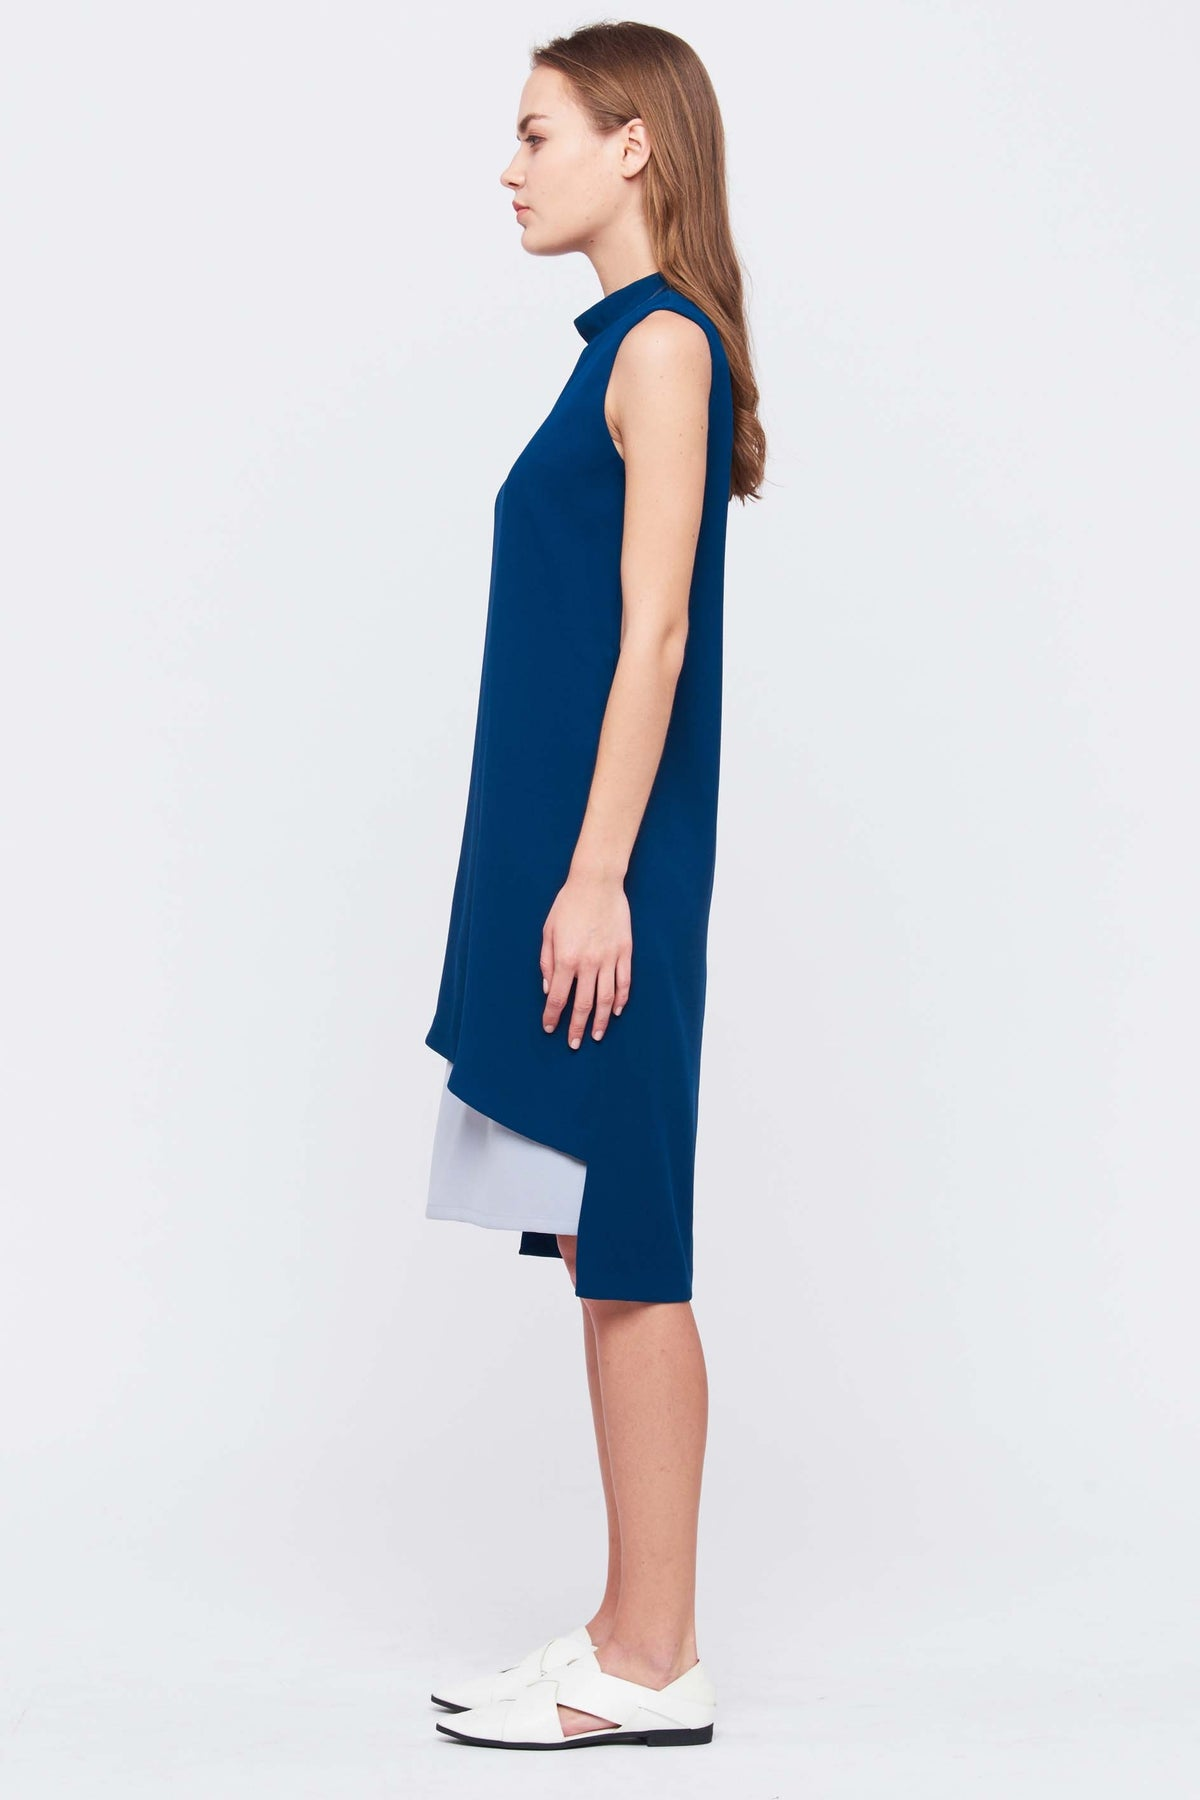 Detachable Panel Dress In Teal